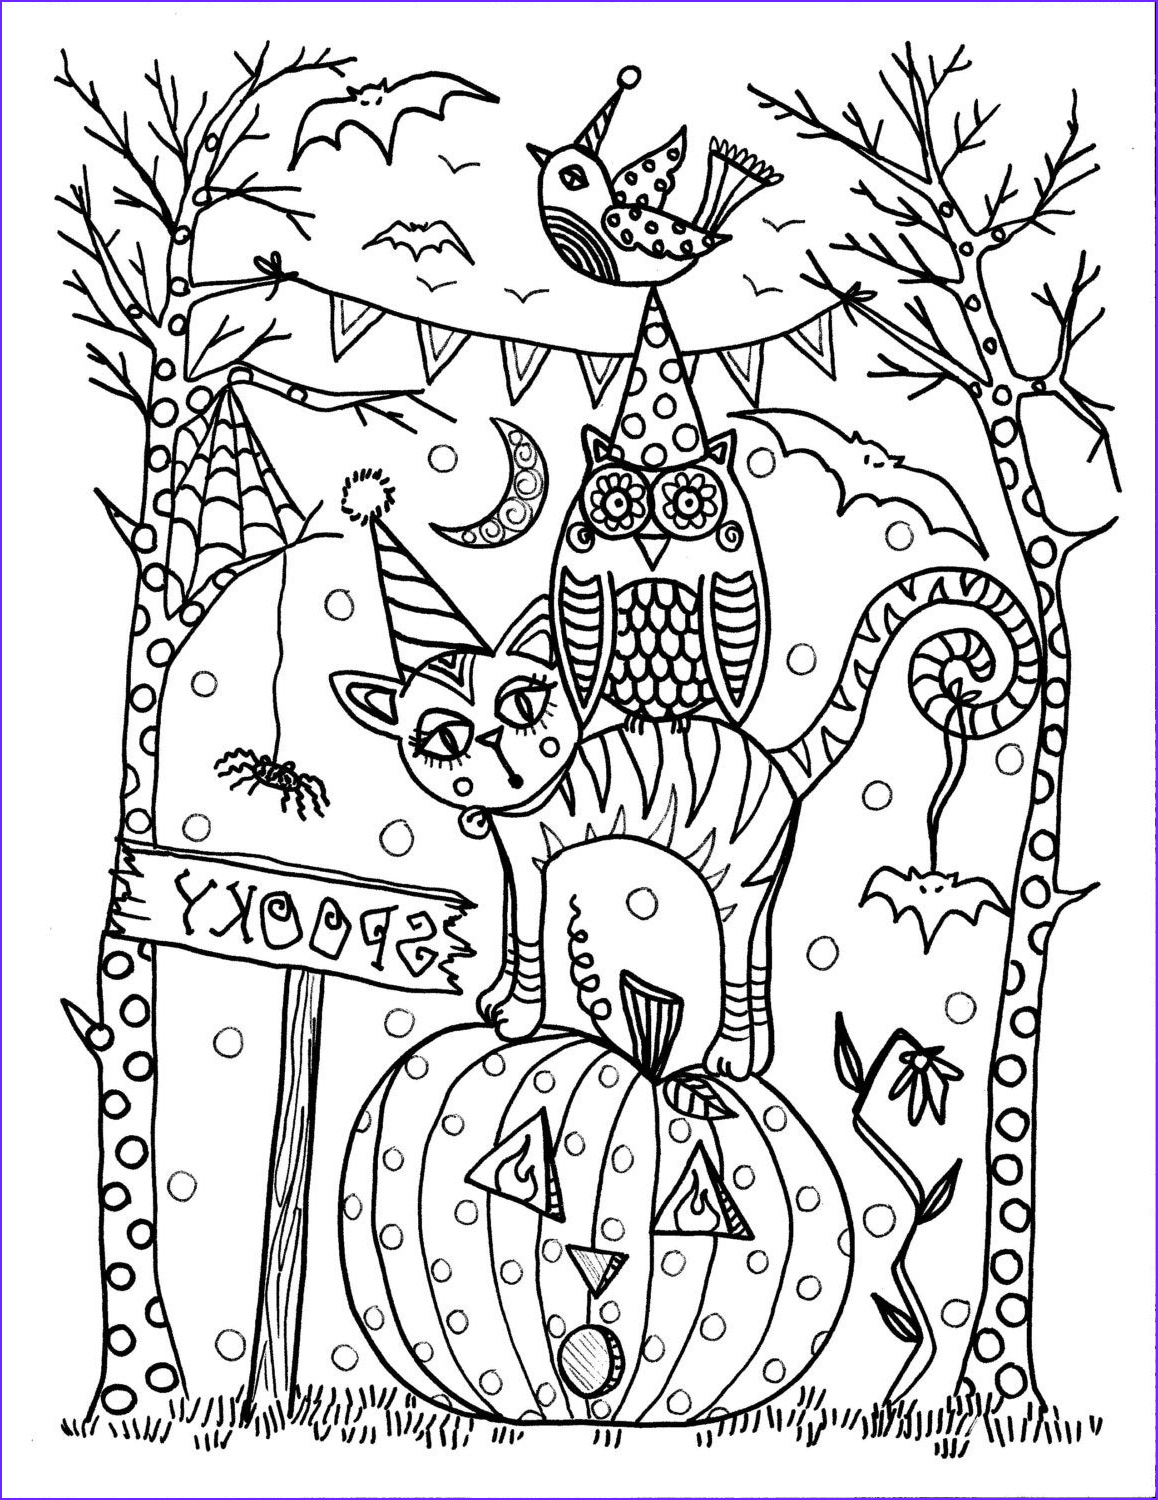 Halloween Coloring Pages Adults Elegant Photos 5 Pages Instant Download Halloween Coloring Pages 5